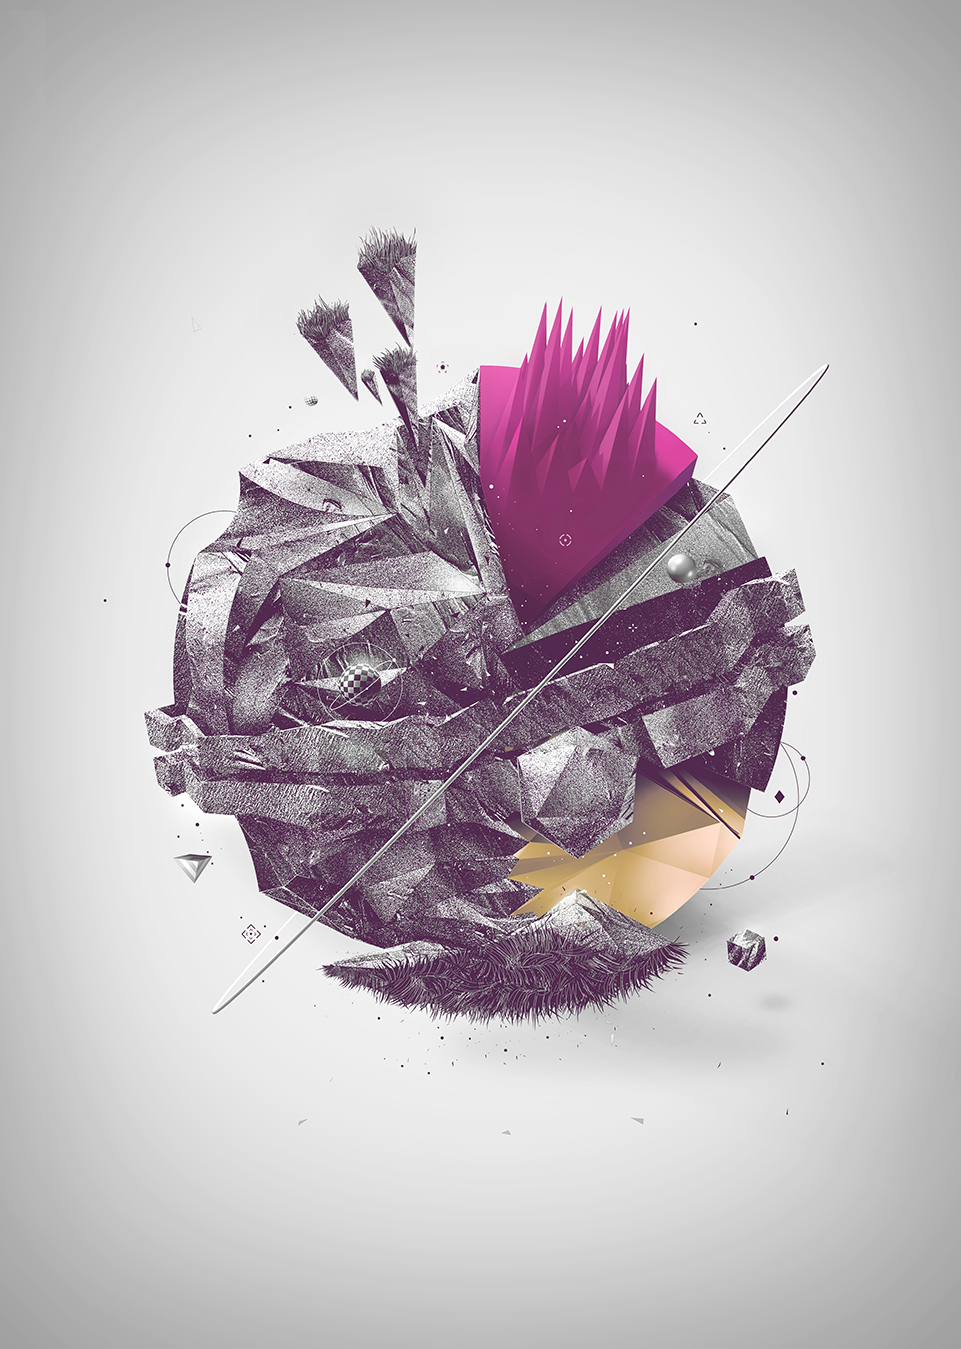 amazing-graphic-design-works-by-rogier-de-boeve-1